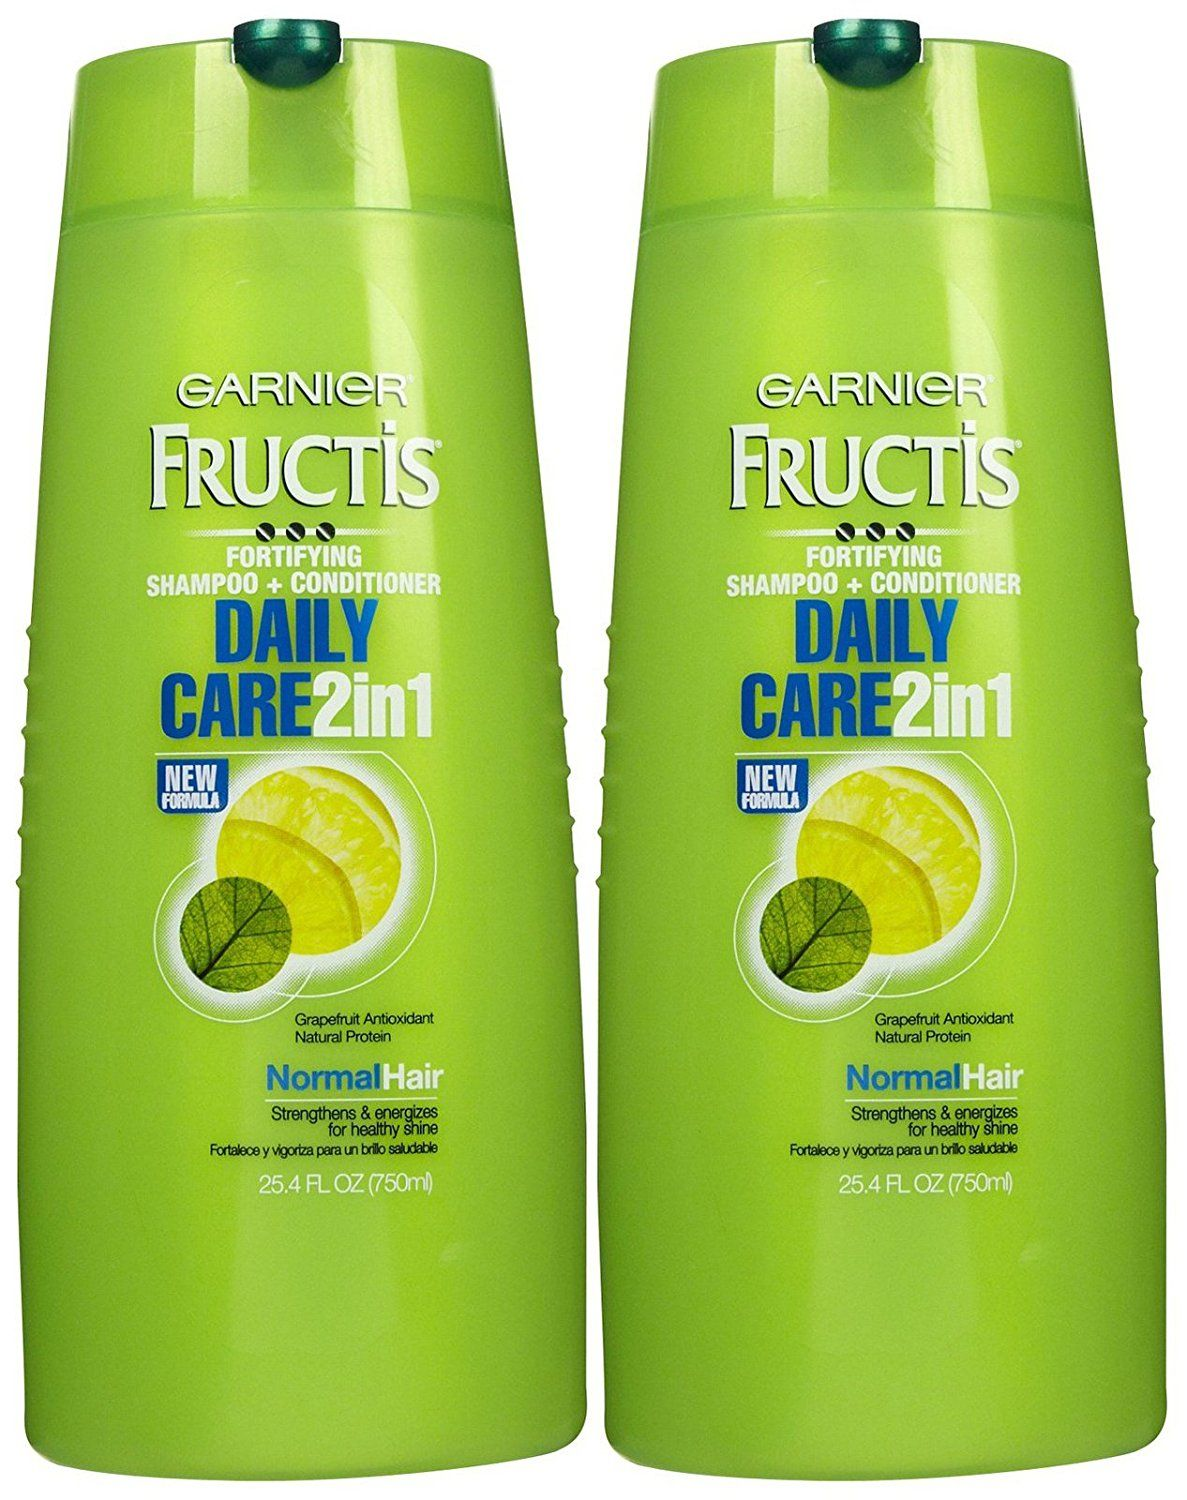 Garnier Fructis Daily Care 2-in-1 Shampoo and Conditioner - 25.4 oz - 2 pk * This is an Amazon Affiliate link. Want… | Shampoo, Shampoo and conditioner, Conditioner